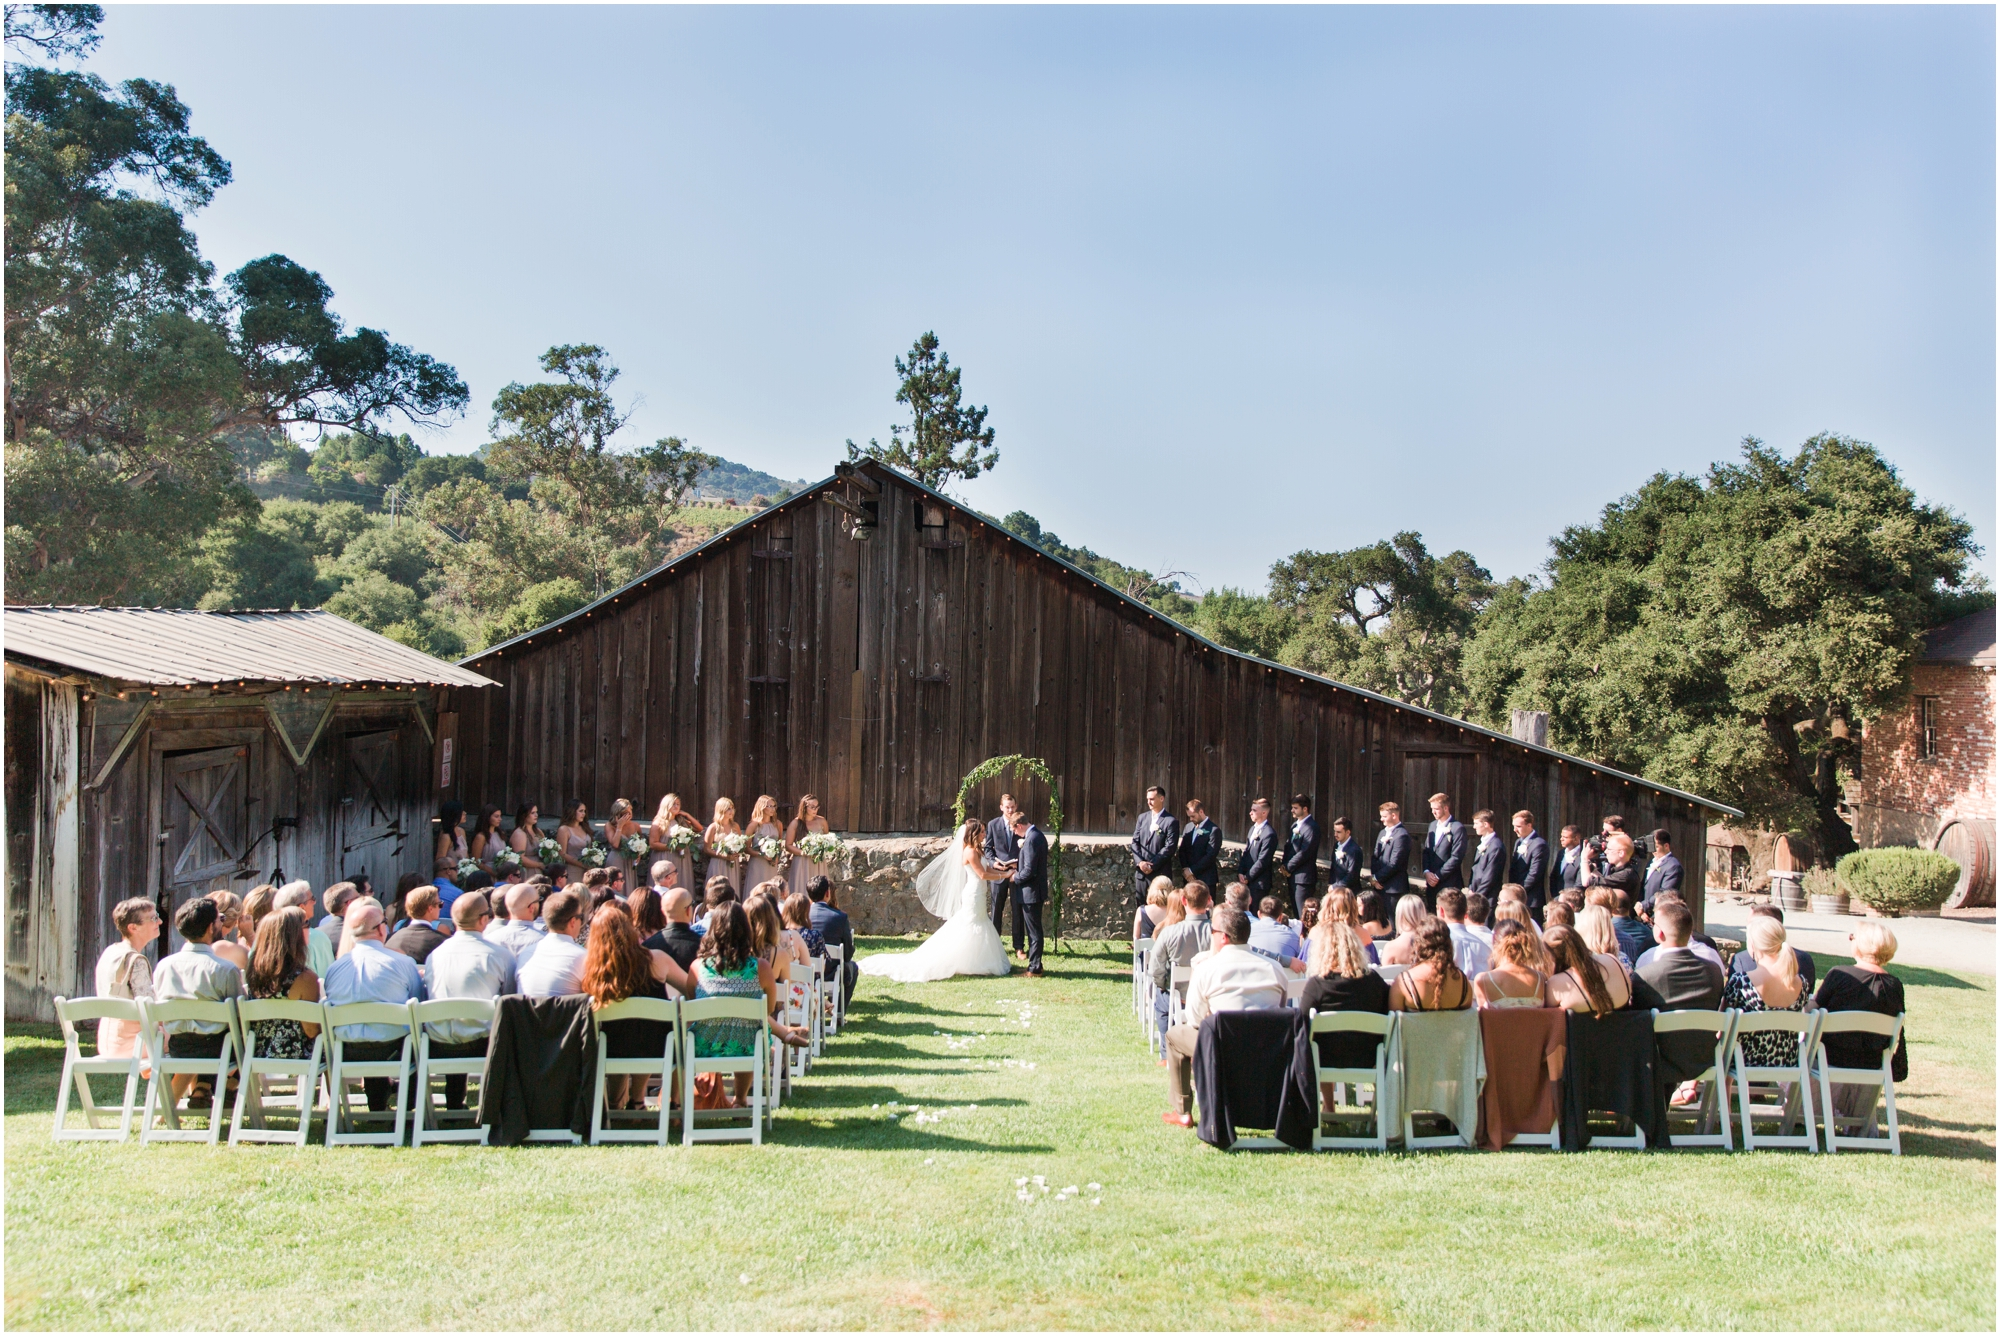 Picchetti Winery wedding pictures by Briana Calderon Photography_2041.jpg